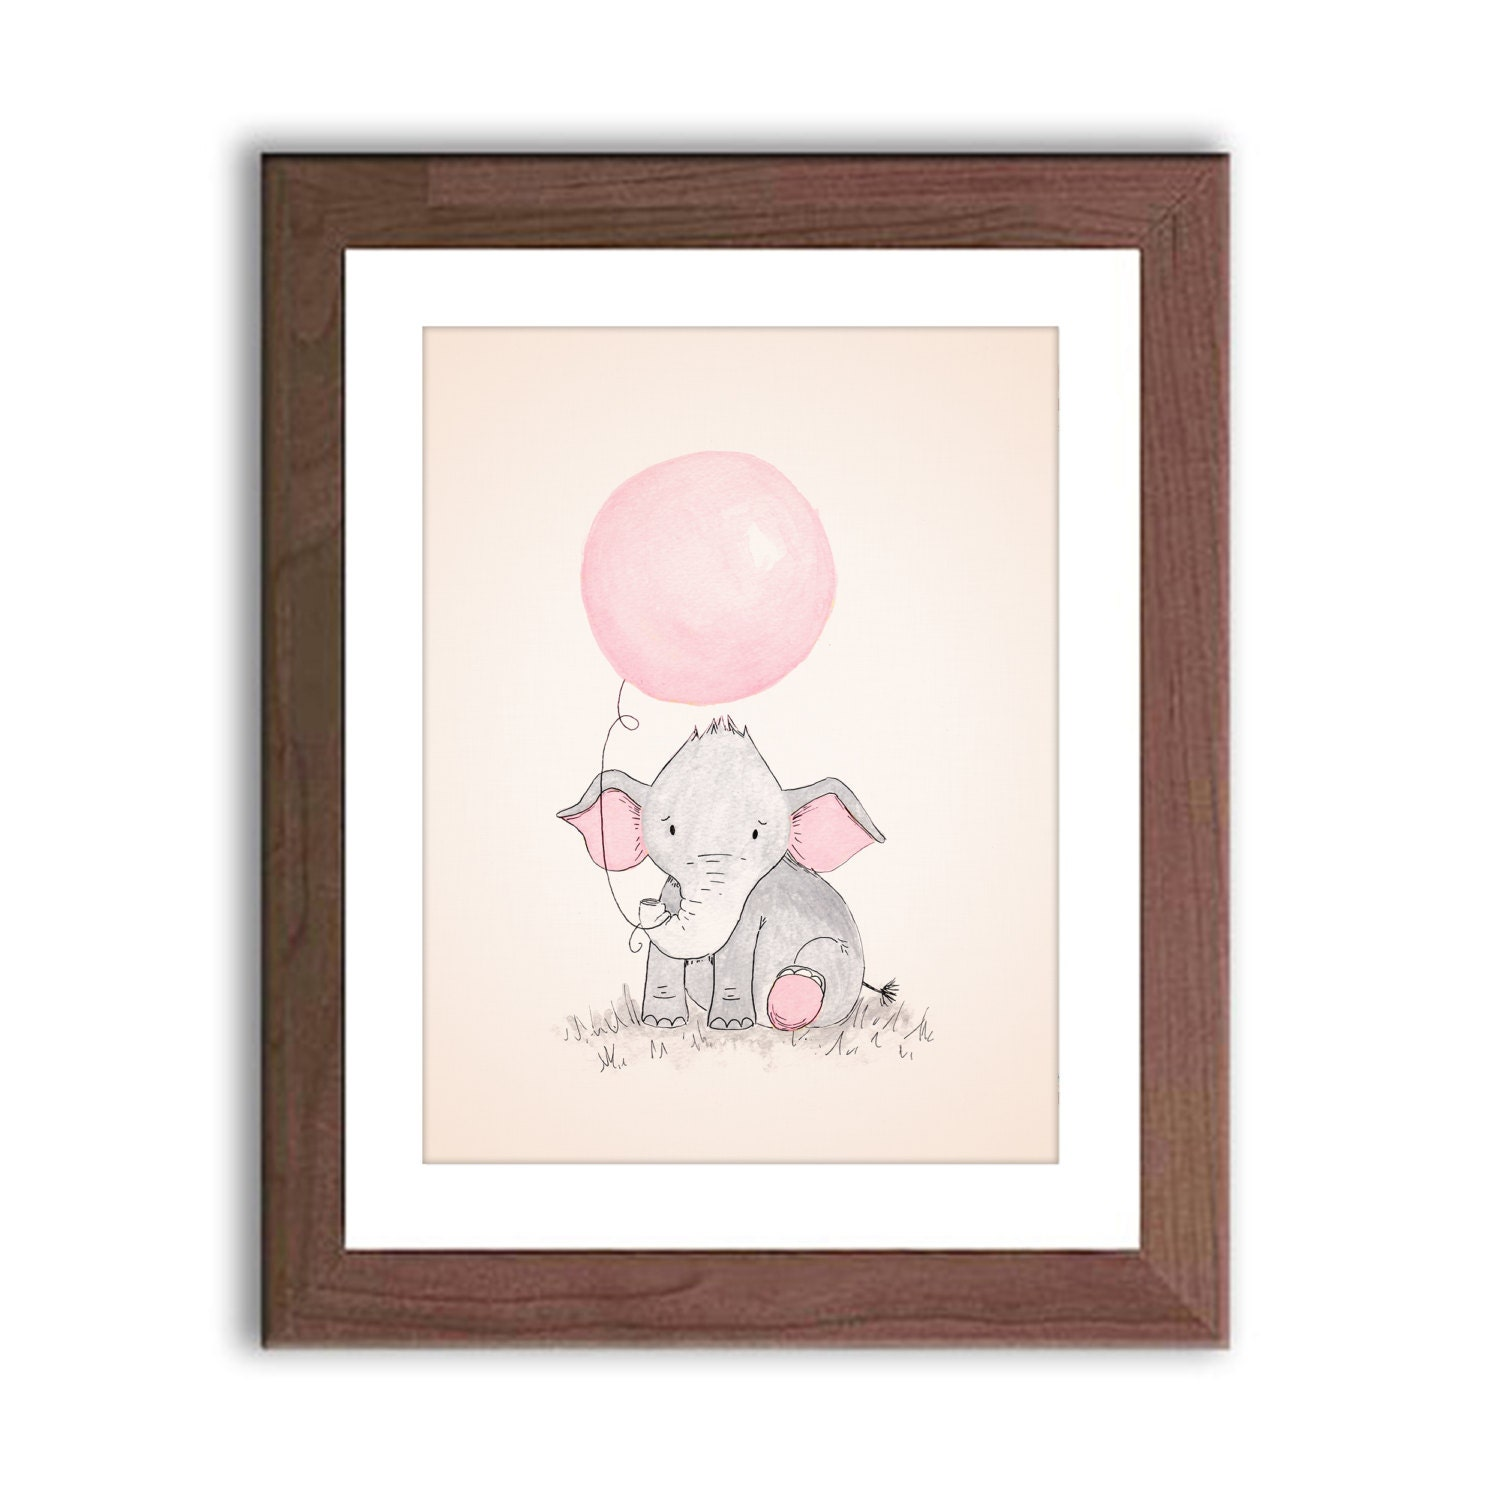 Framed Art Bathroom Baby Elephant Nursery Art Elephant Holding Balloon